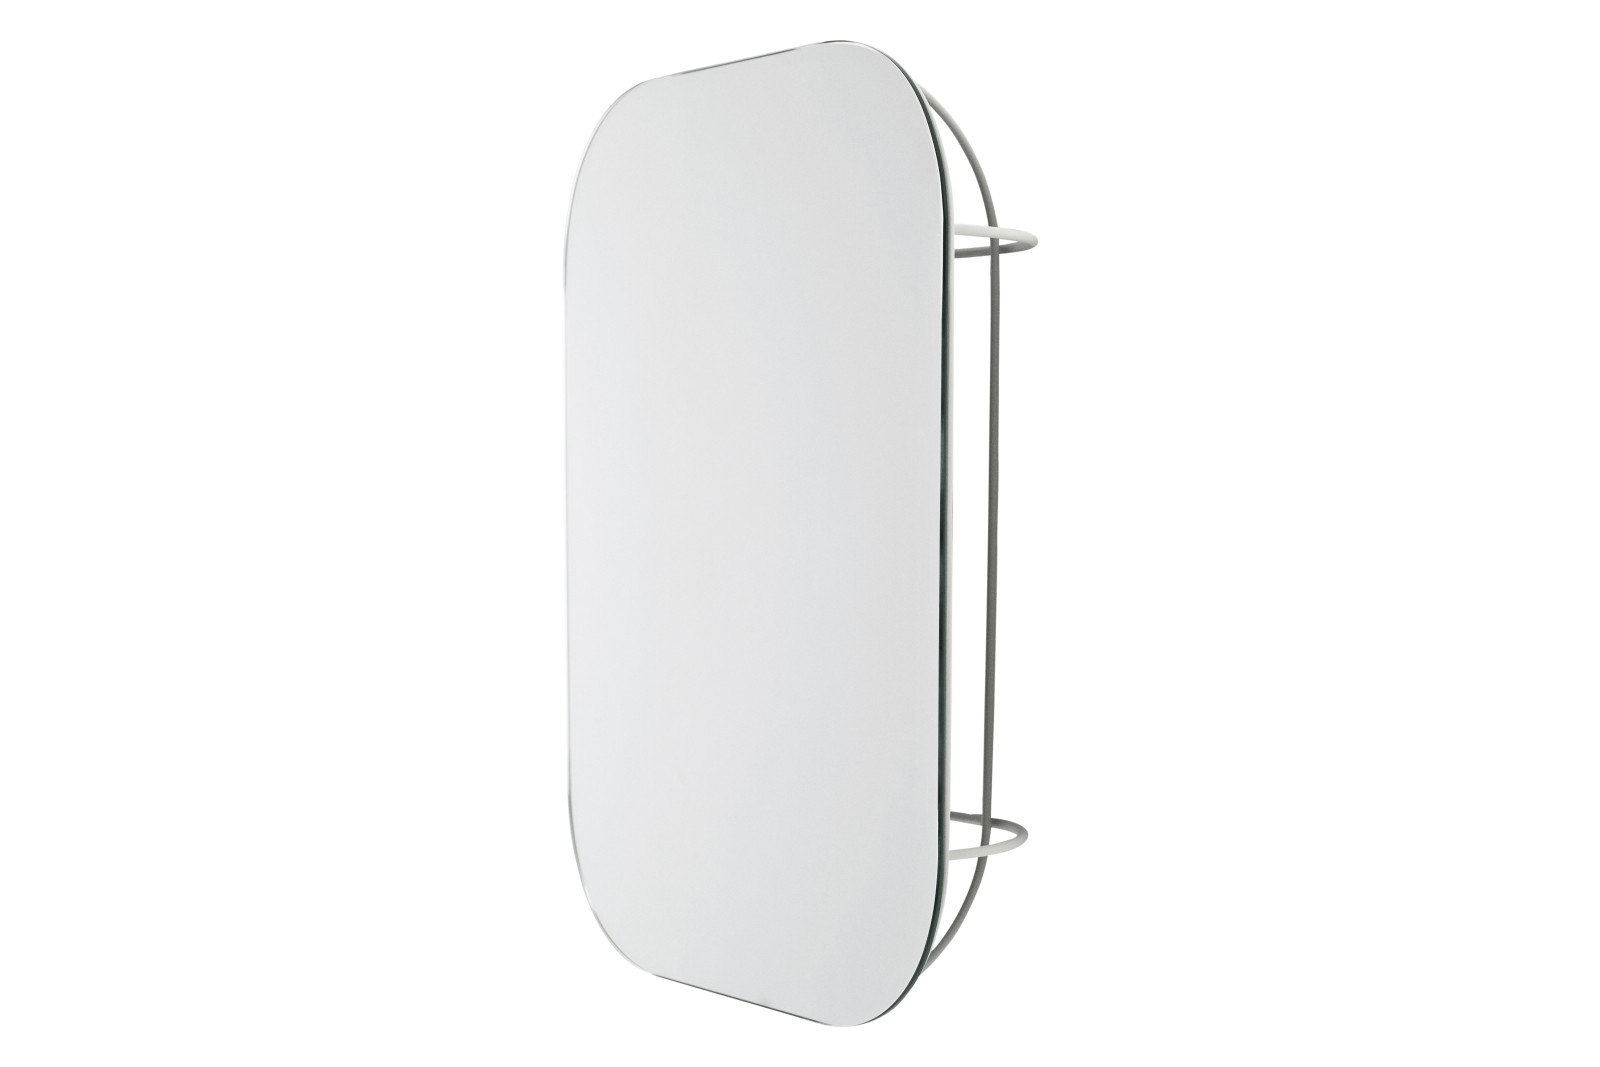 FUWL Cage Wall Mirror White